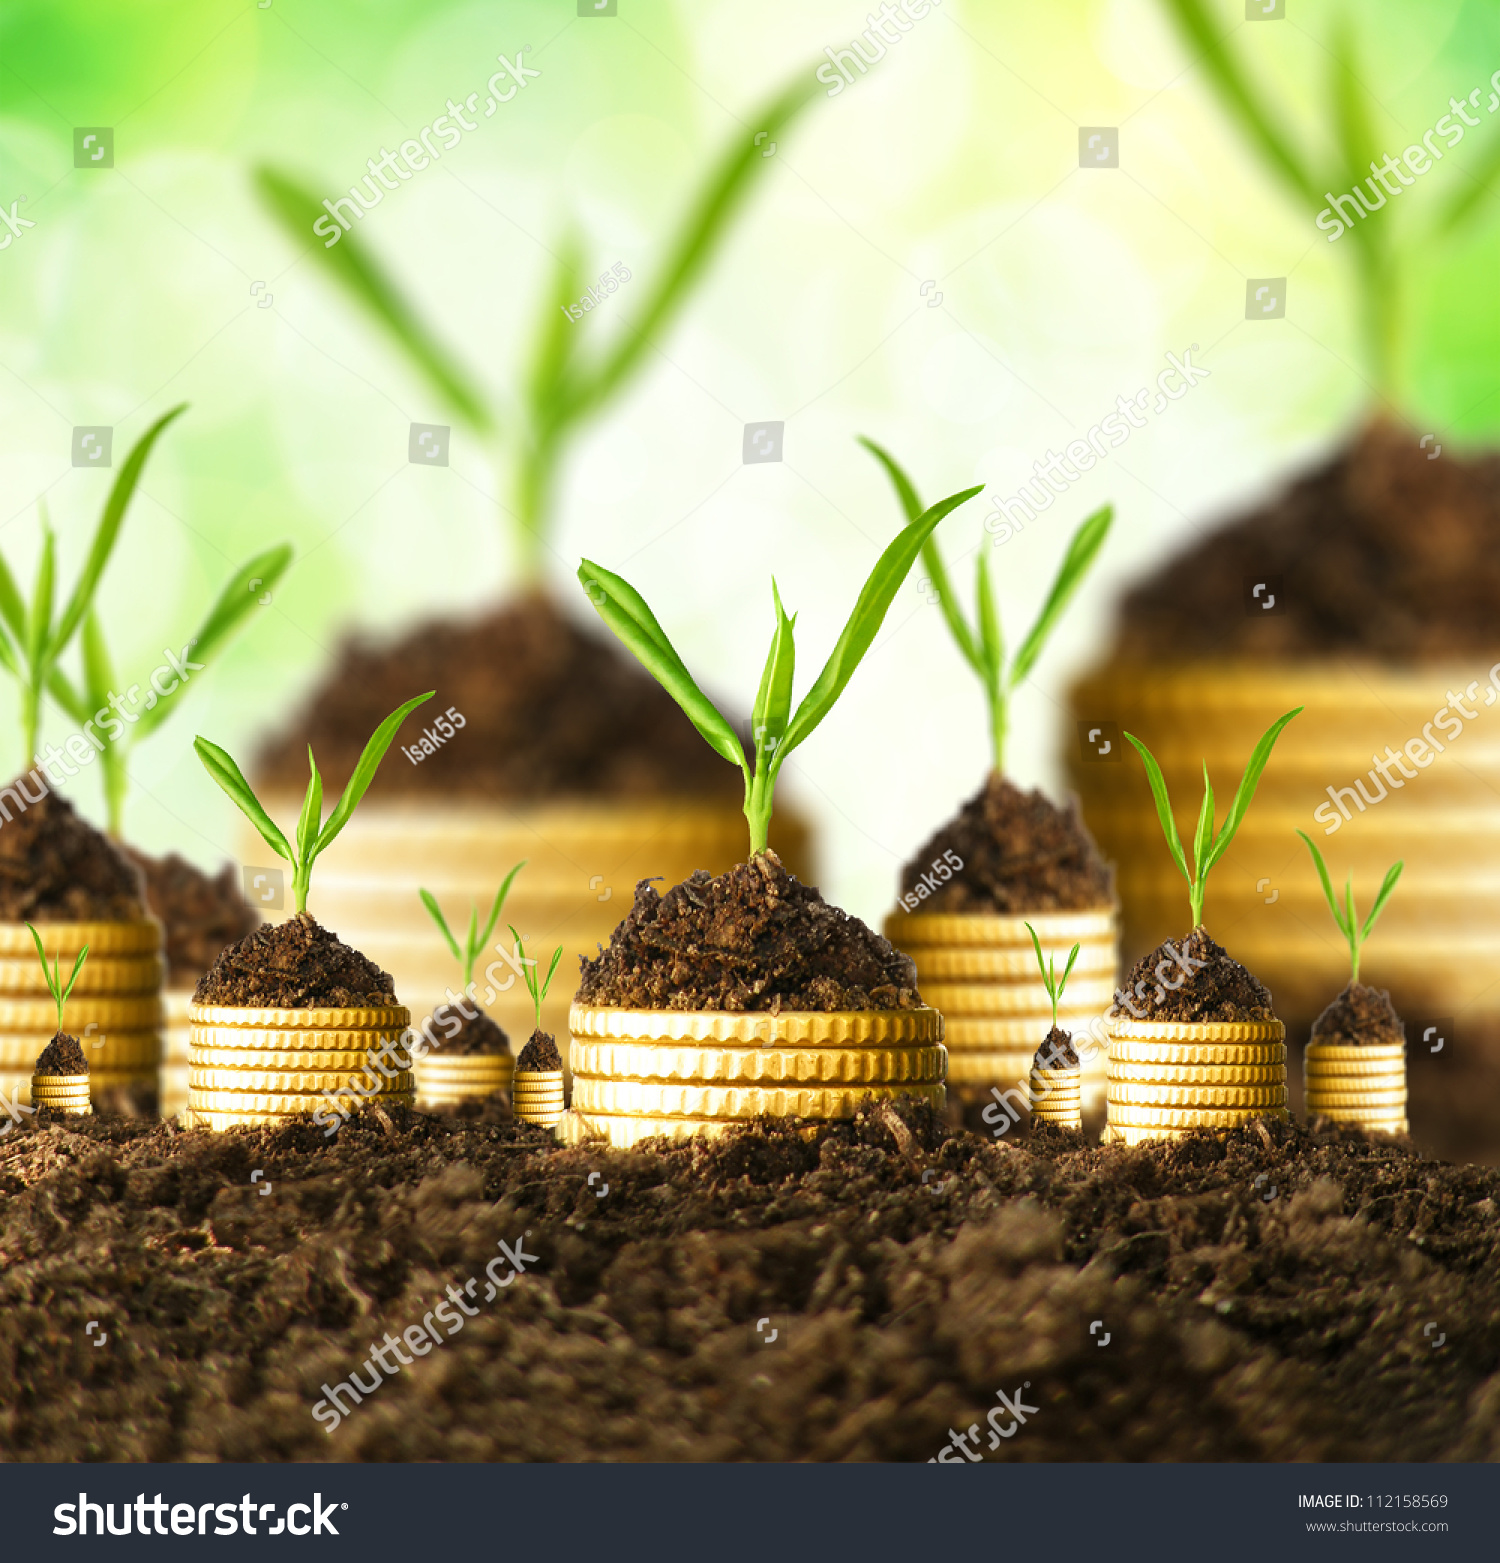 Golden Coins Soil Young Plant Money Stock Photo 112158569 - Shutterstock